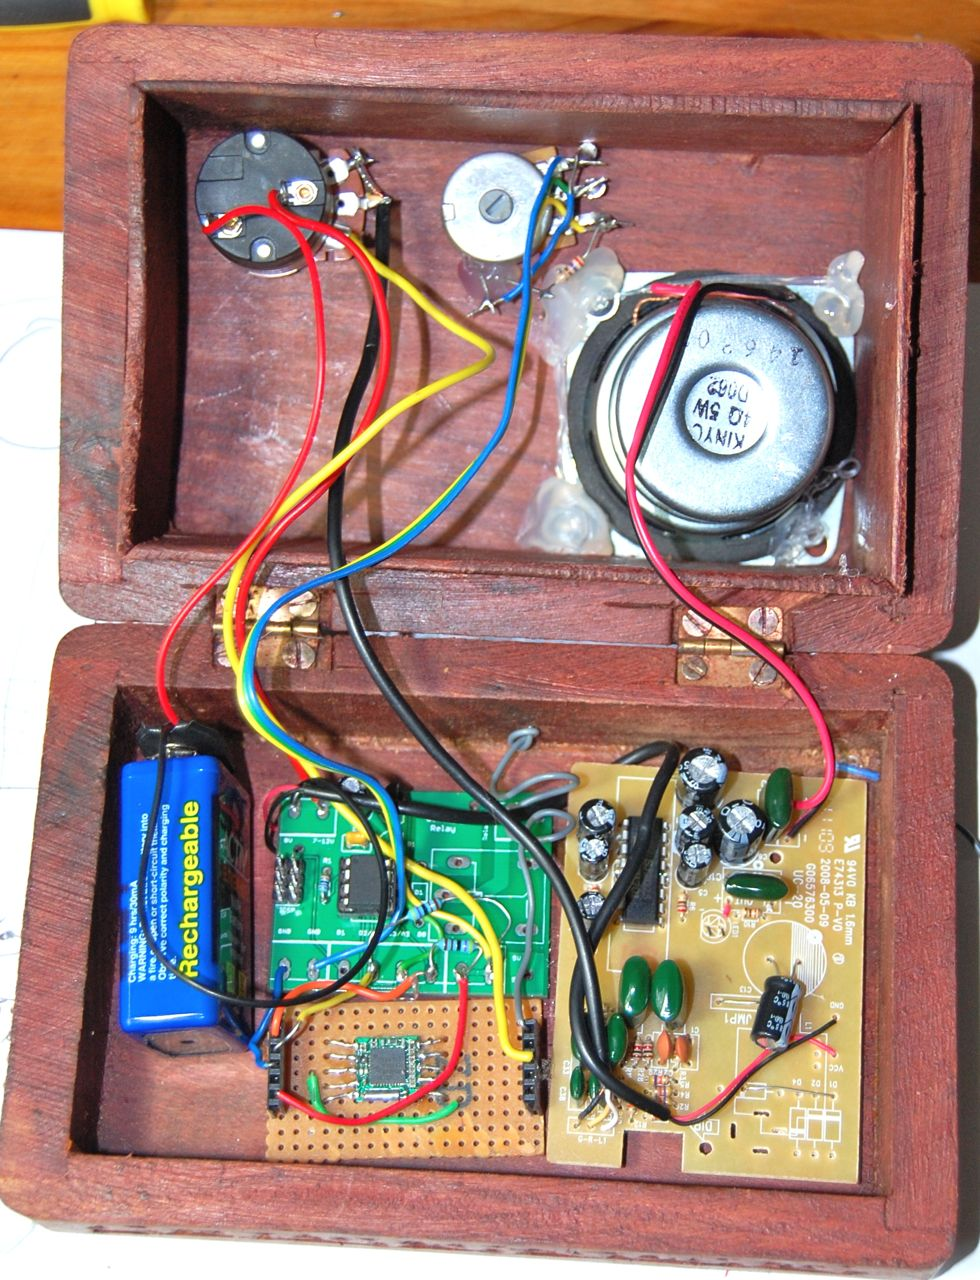 Dr Monks Diy Electronics Blog Steampunk Fm Radio Part 2 Am Receiver Simple Circuit Pc It Uses The Amp And Speaker From A Scavenged Usb Powered Right Hand Side Tea5767 Module Breakout Described In An Earlier Post